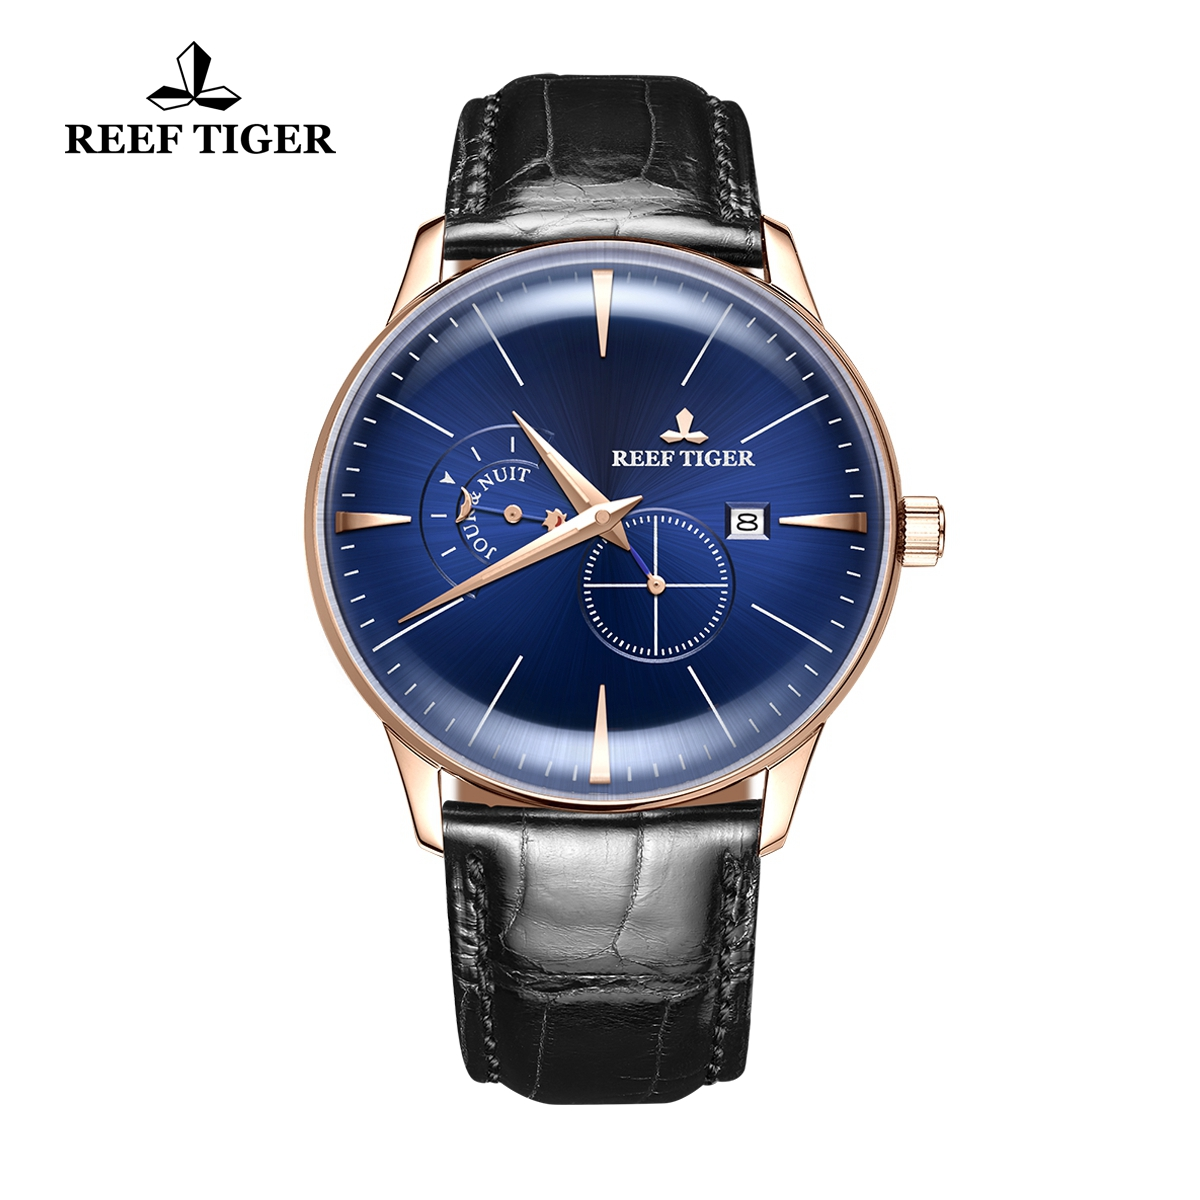 Reef Tiger Classic Artisan Men's Fashion Rose Gold Watch Blue Dial Leather Strap Automatic Watches RGA8219-PLB